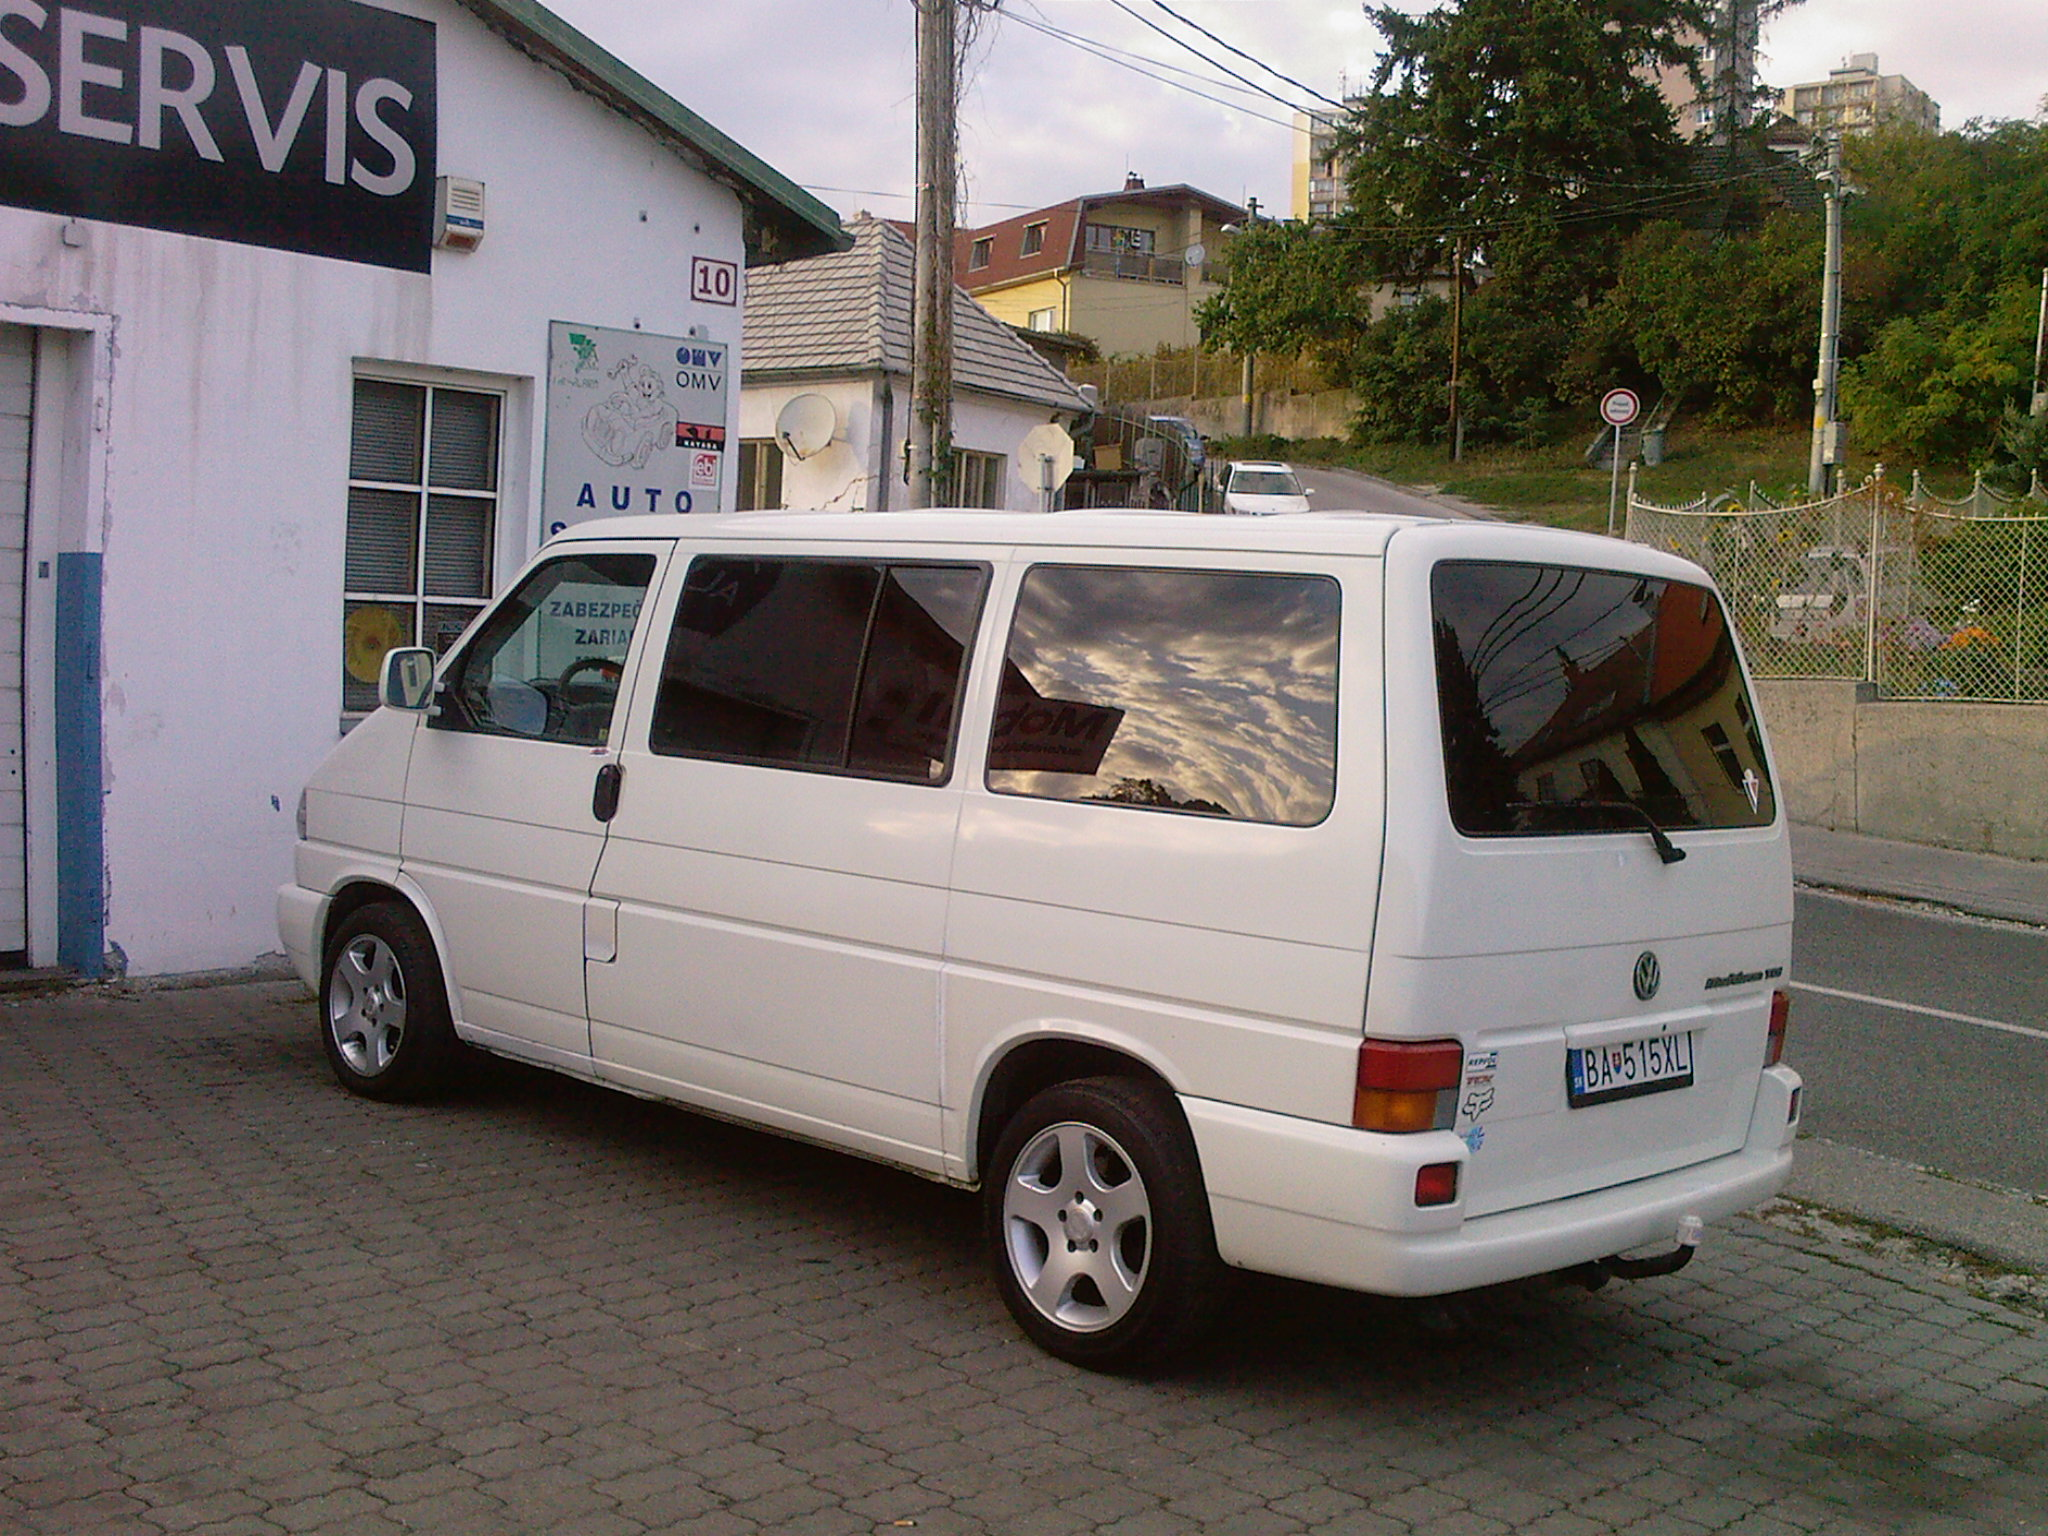 VW Transporter Multivan (Mato515)VW Transporter Multivan (Mato515)VW Transporter Multivan (Mato515)VW Transporter Multivan (Mato515)VW Transporter Multivan (Mato515)VWトランスポーターマルチバンVW Transporter Multivan (Mato515)VW Transporter Multivan (Mato515)